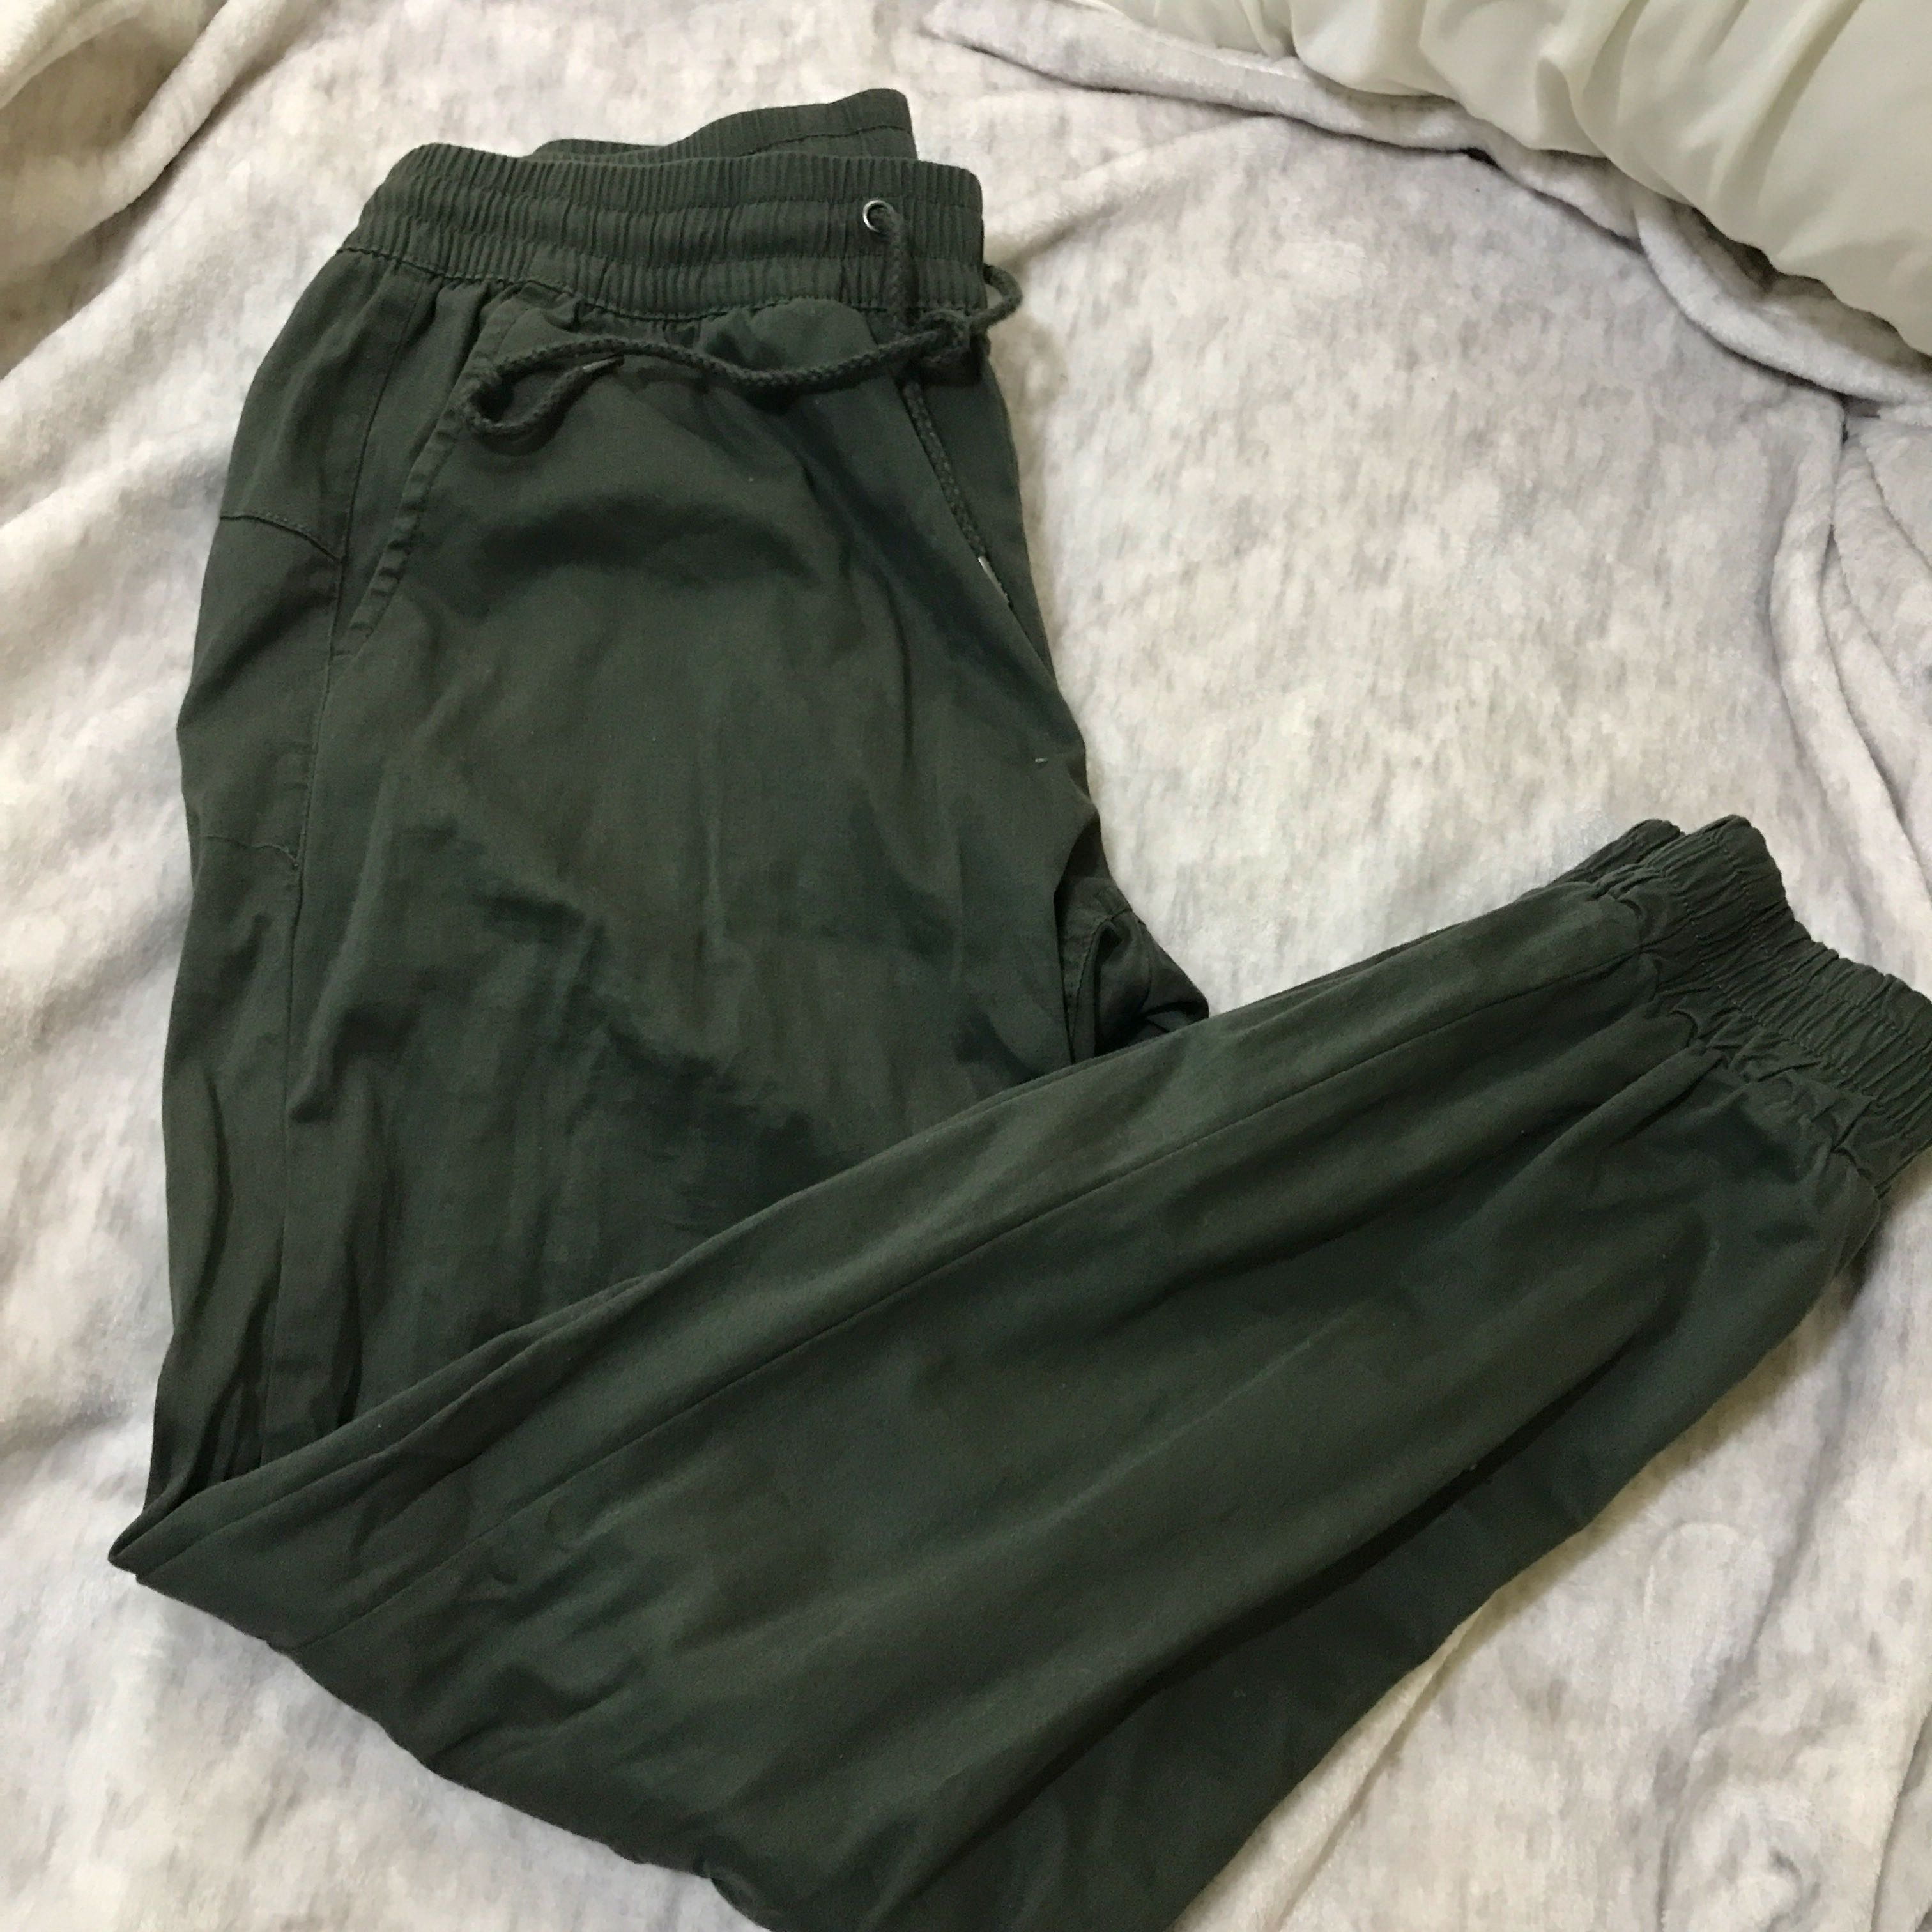 **REDUCED PRICE** M for Mendocino pants